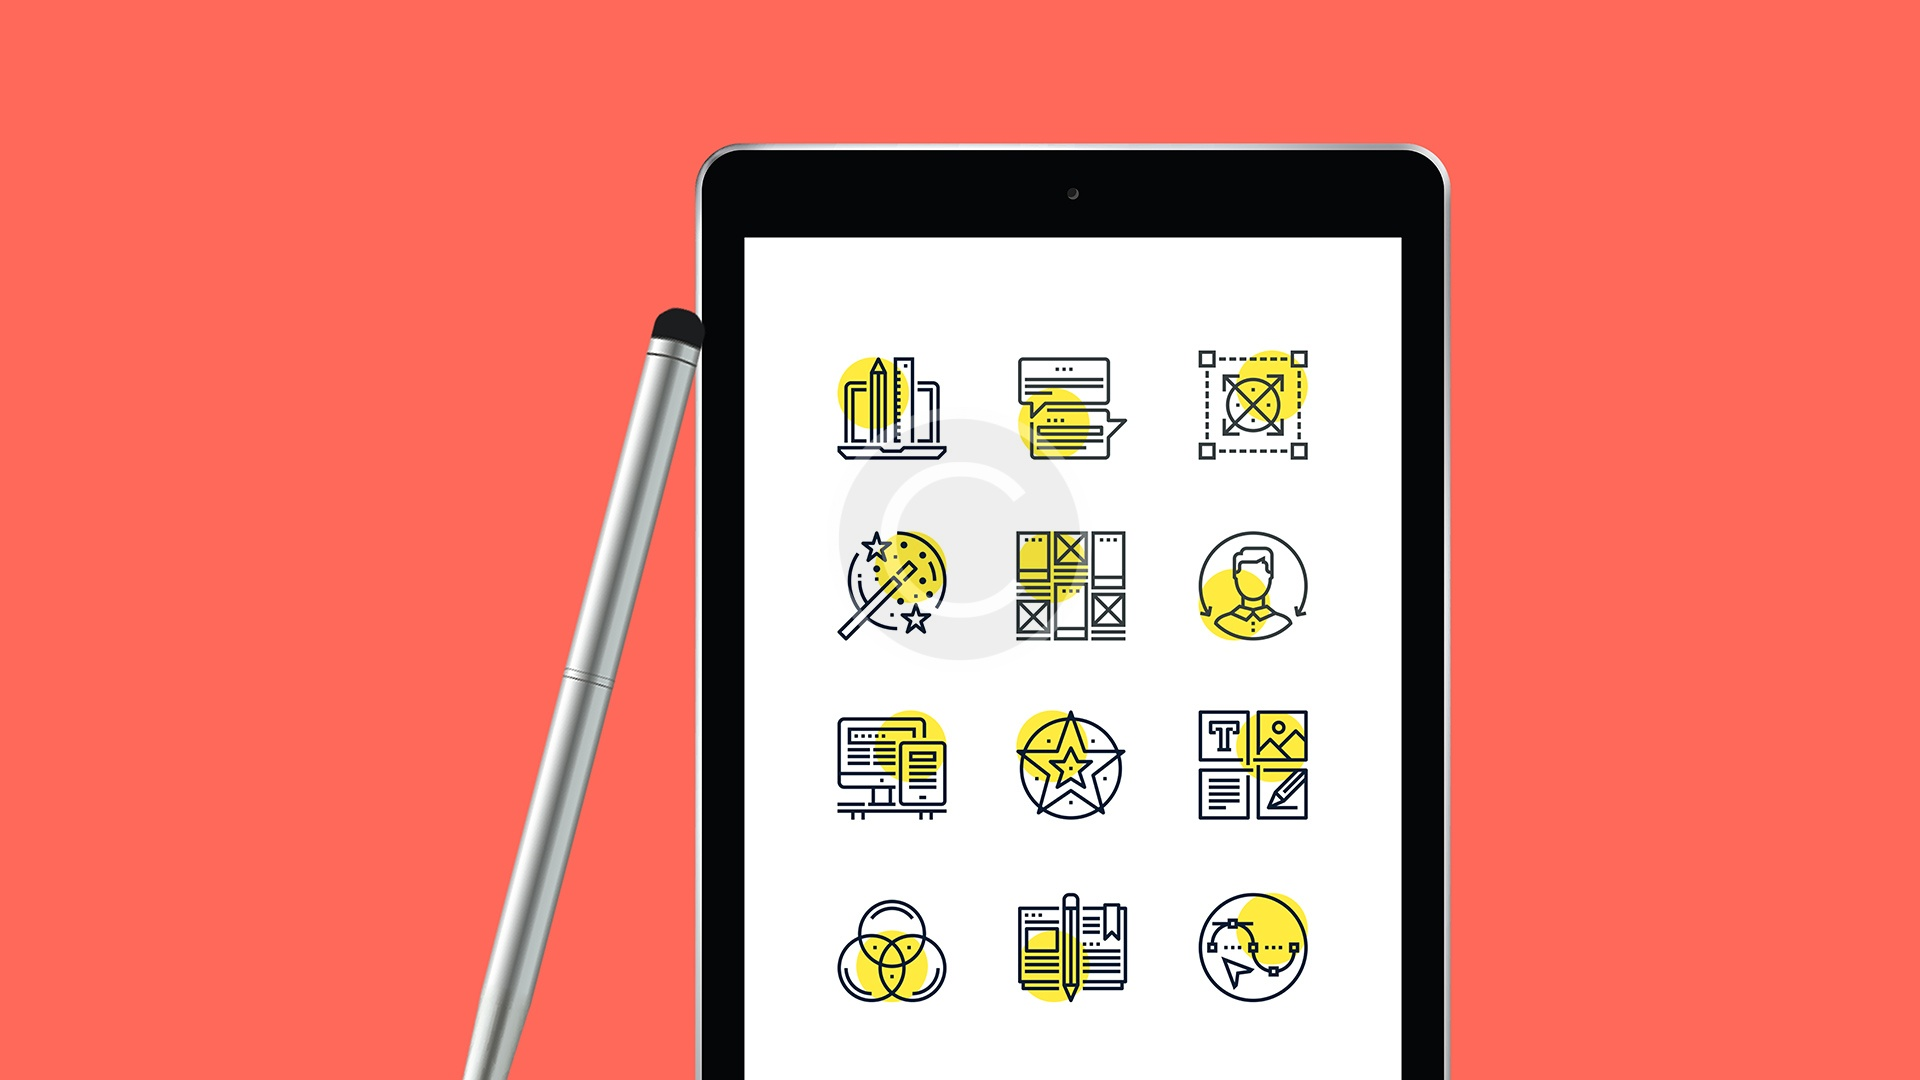 Illustration & Icons